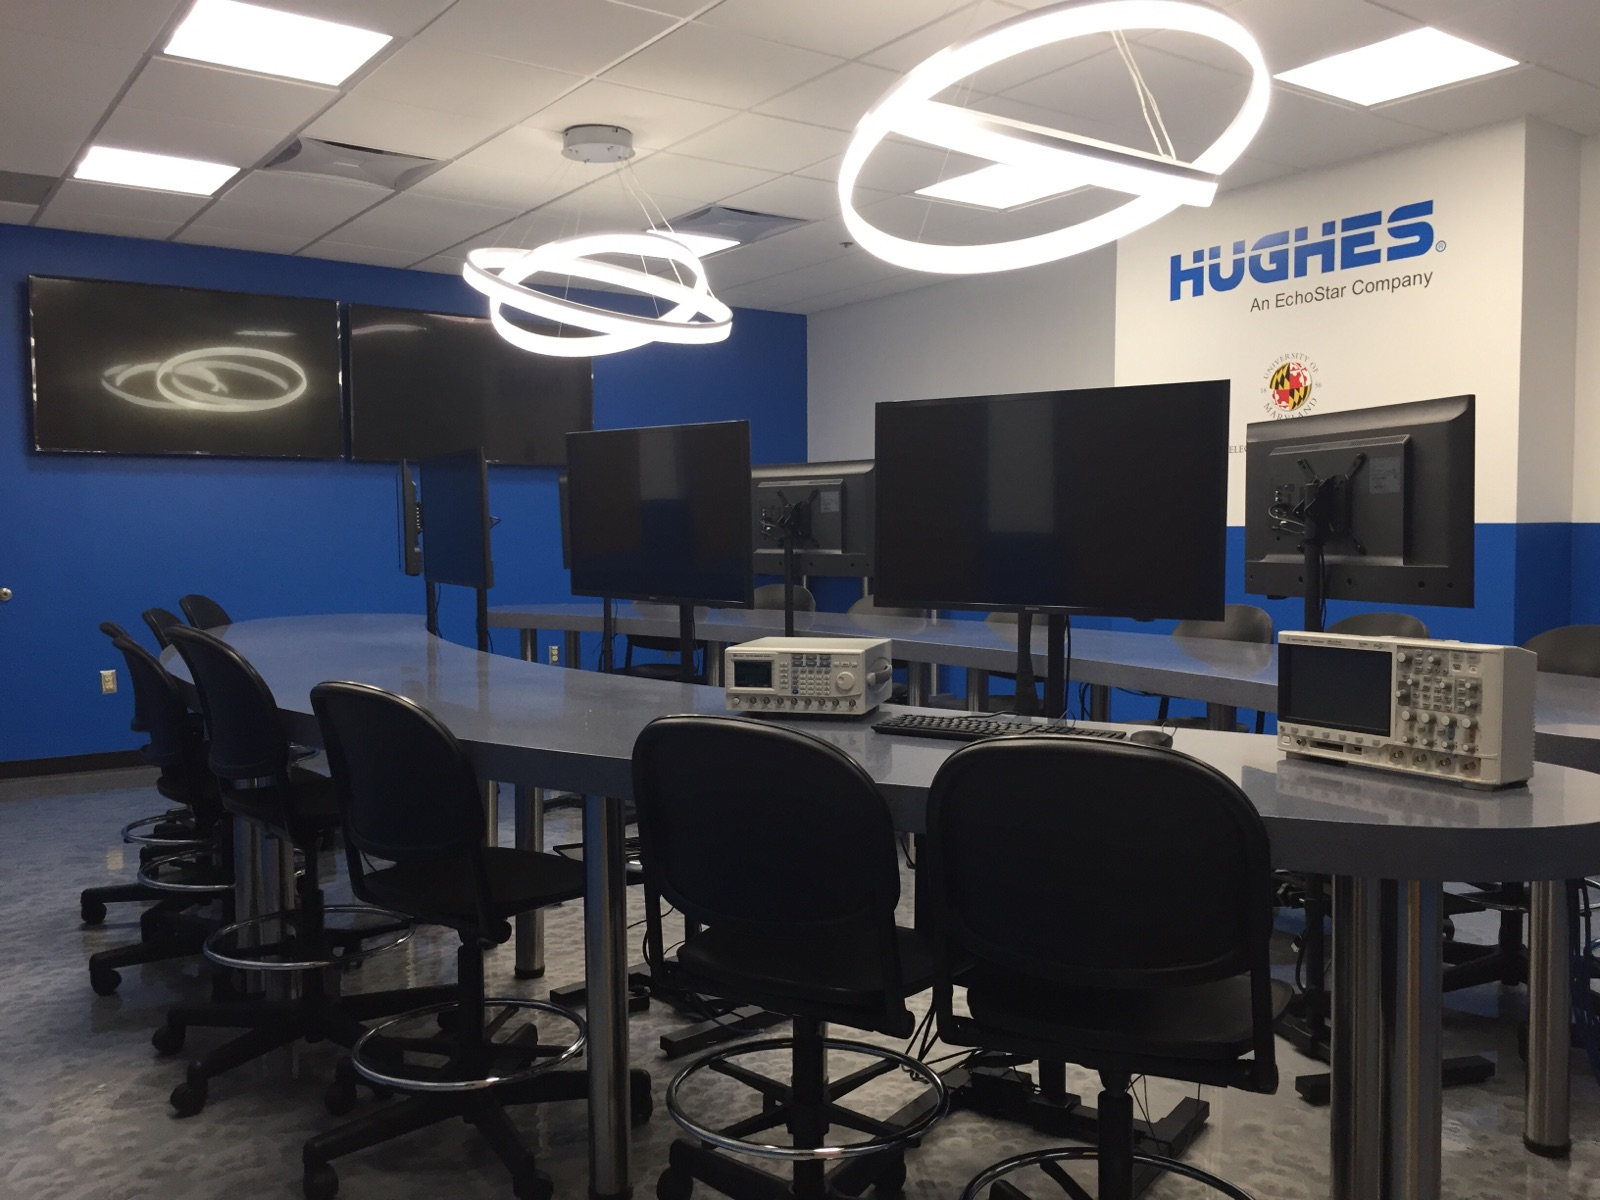 The 428 Communications Design Lab sponsored by Hughes Network Systems